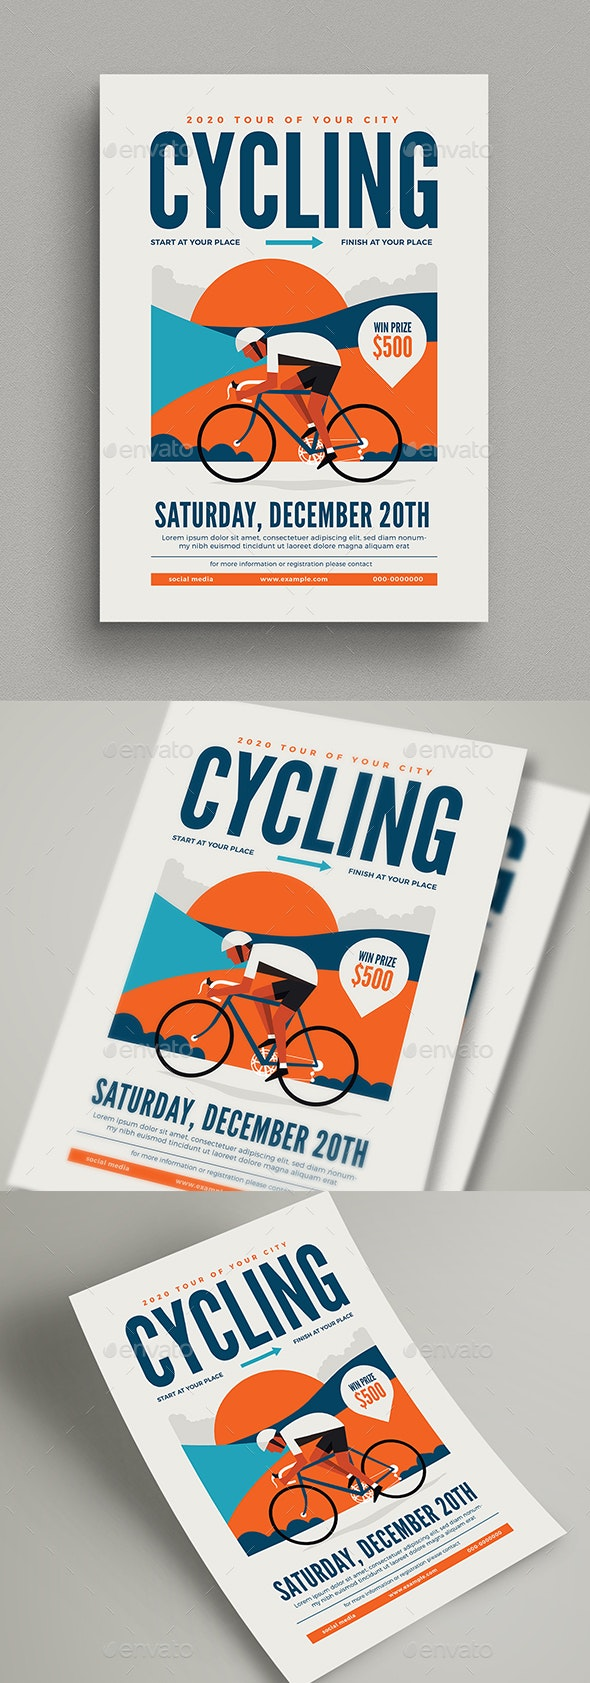 Cycling Event Flyer - Sports Events